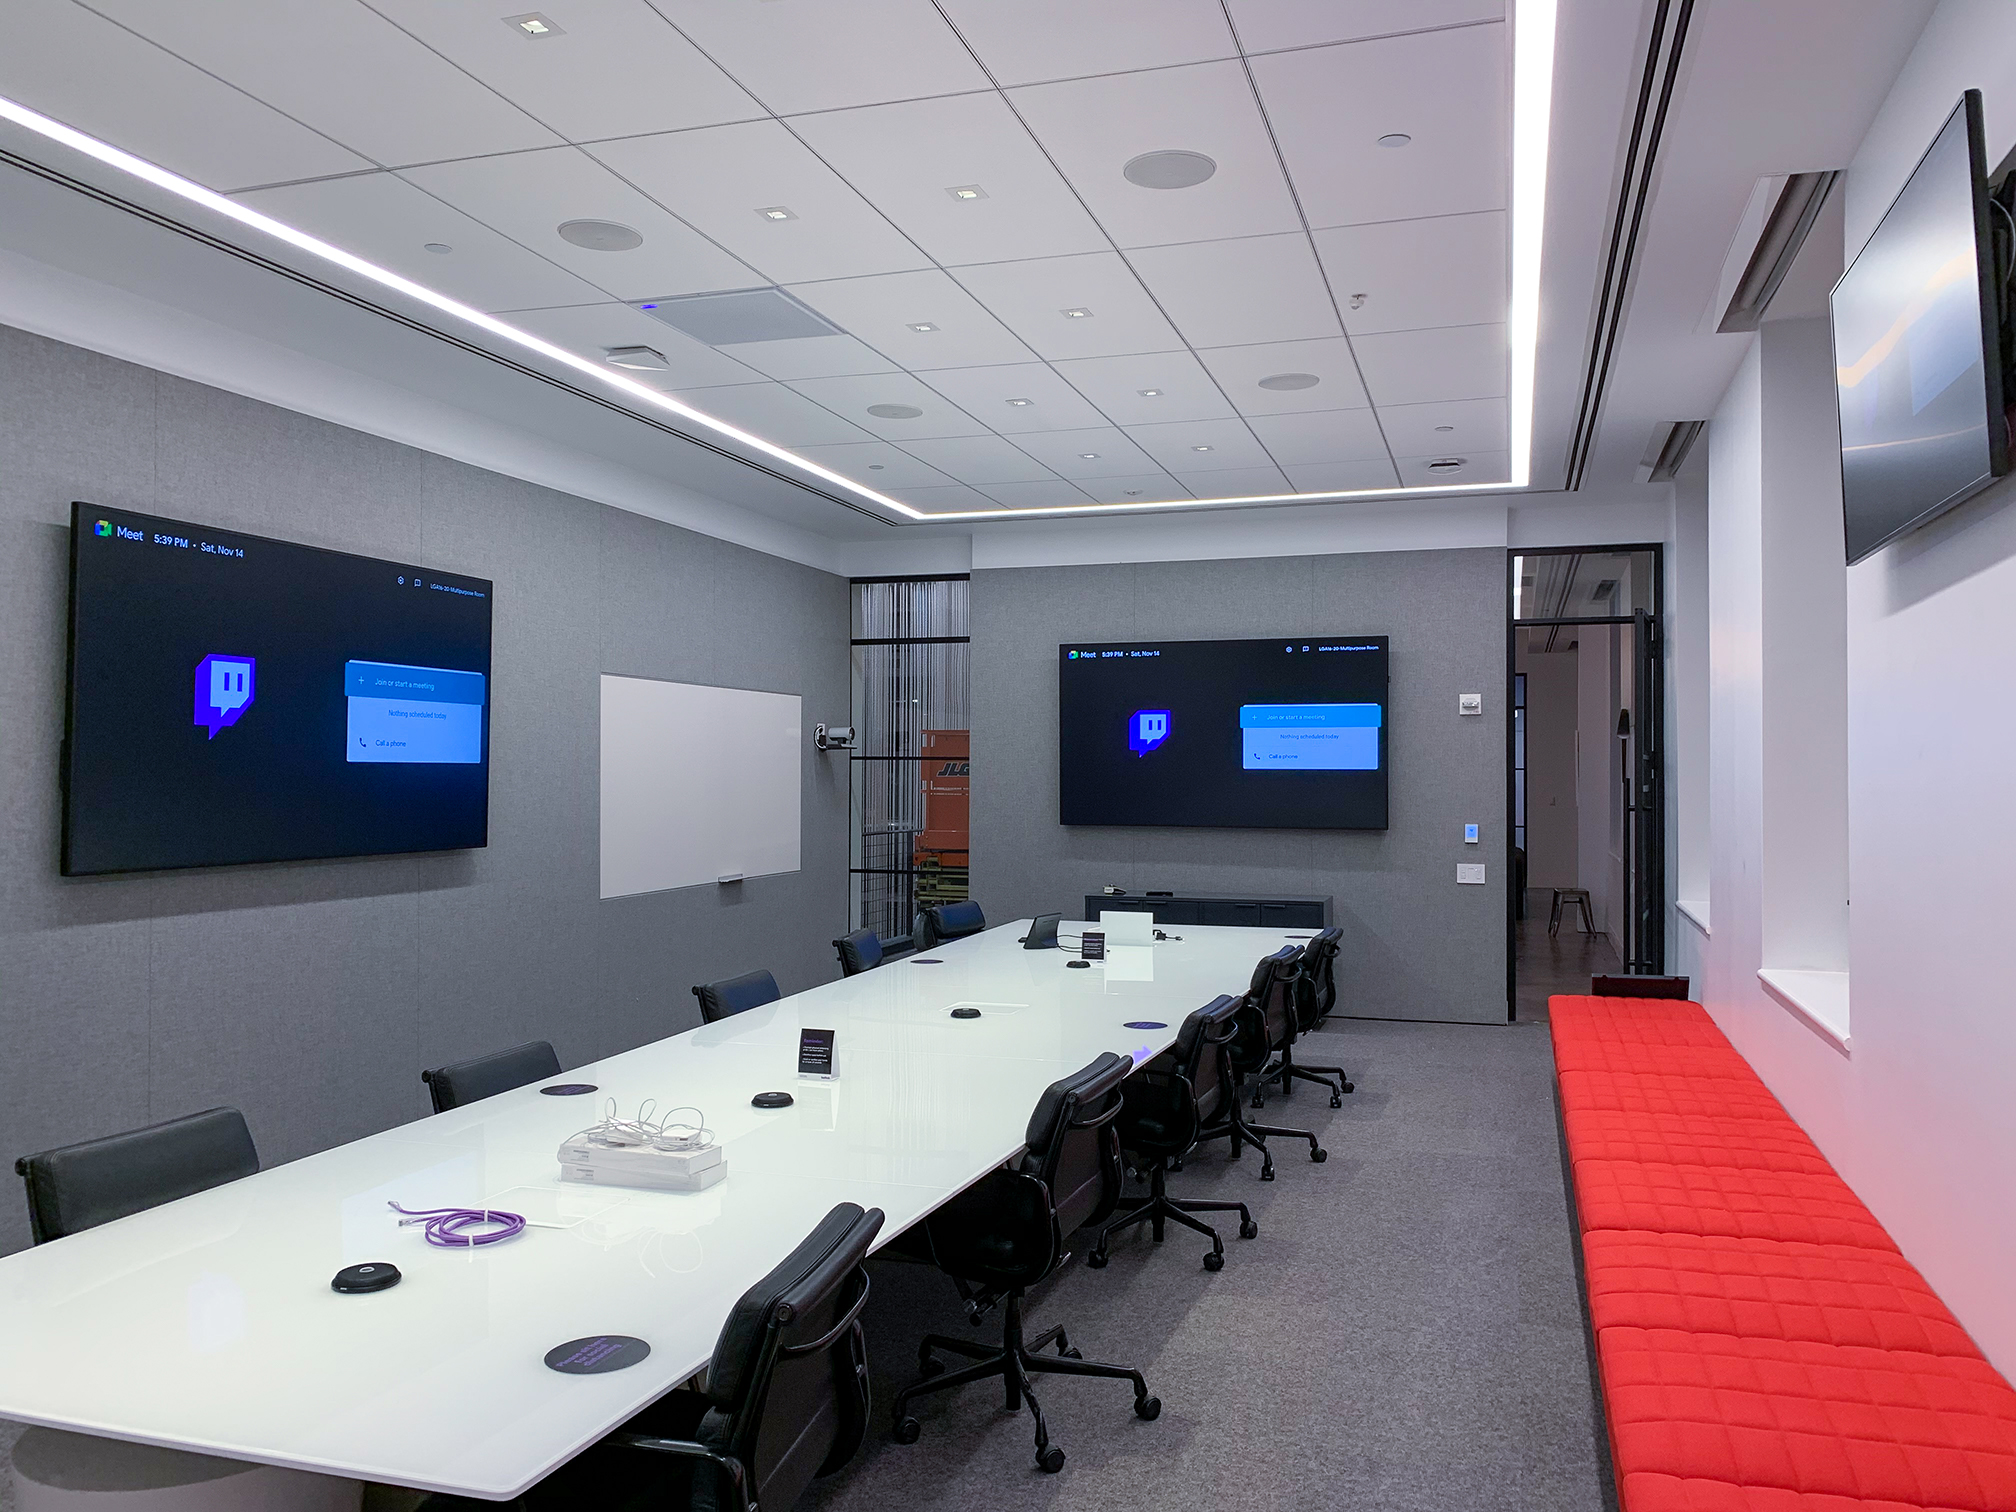 Twitch HQ 2.0 executive conference room using Samsung LED displays